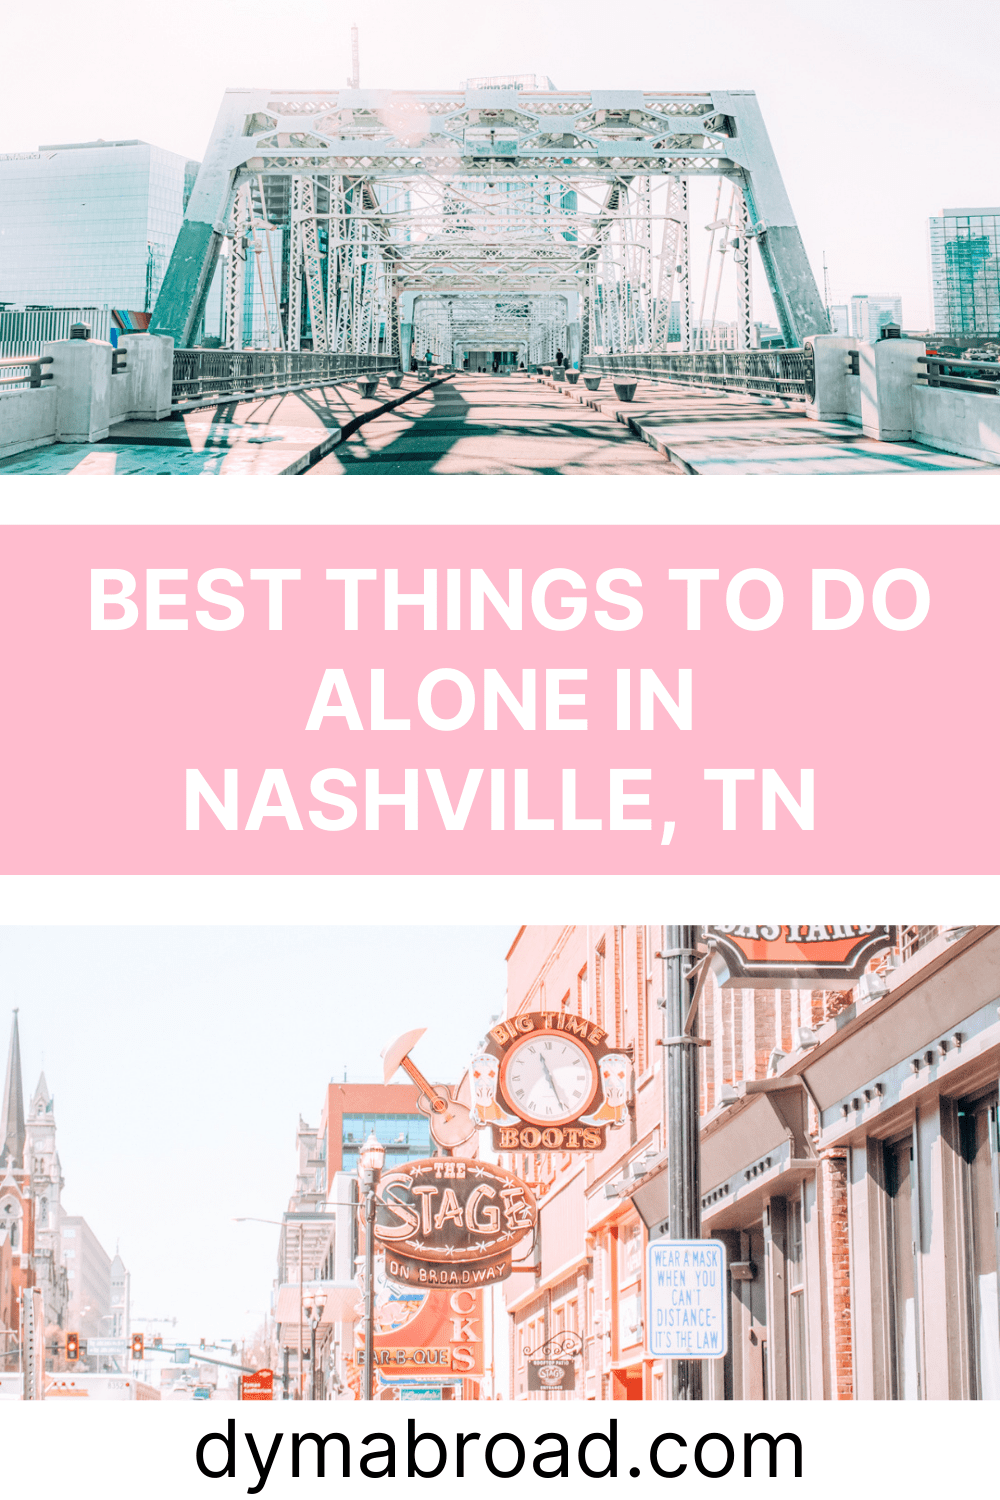 Things to do alone in Nashville second Pinterest image